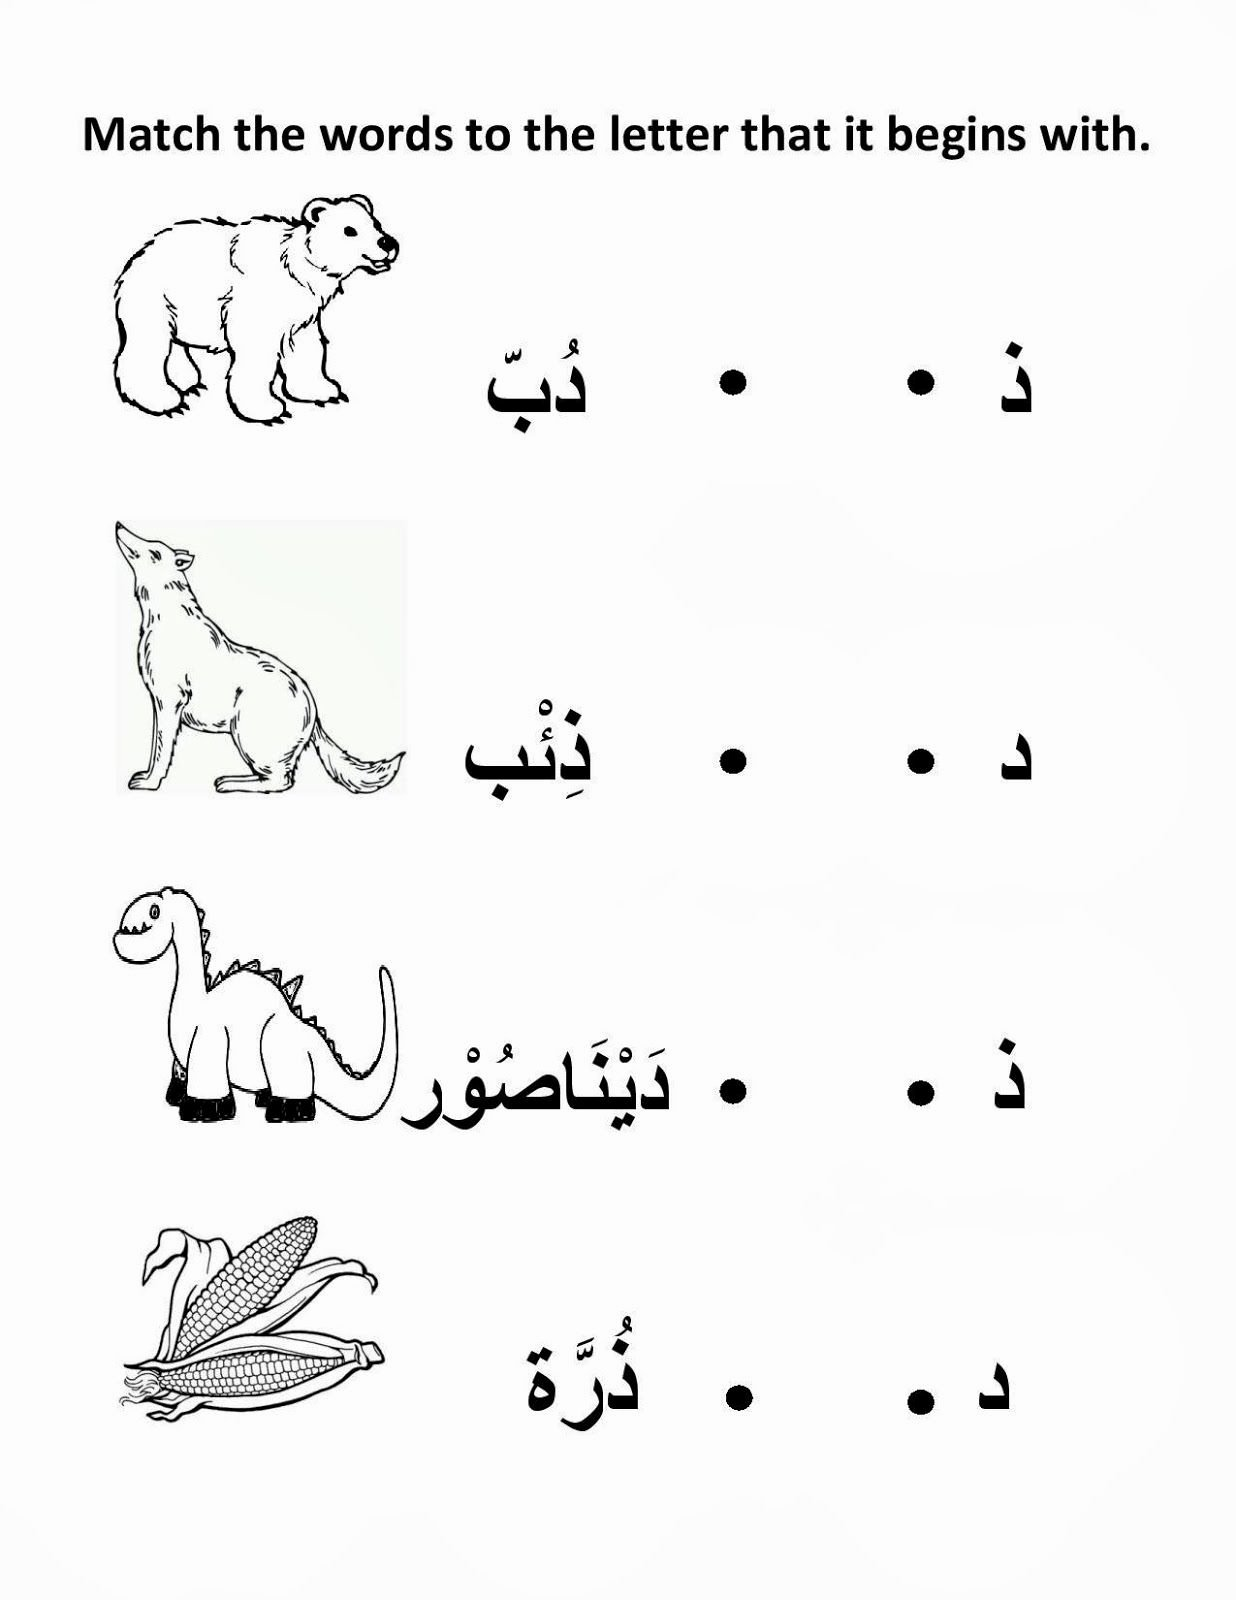 Arabic Worksheets for Preschoolers Awesome Iqra Alif Ba Ta Worksheet for Kids 11 Oct 2013 In 2020